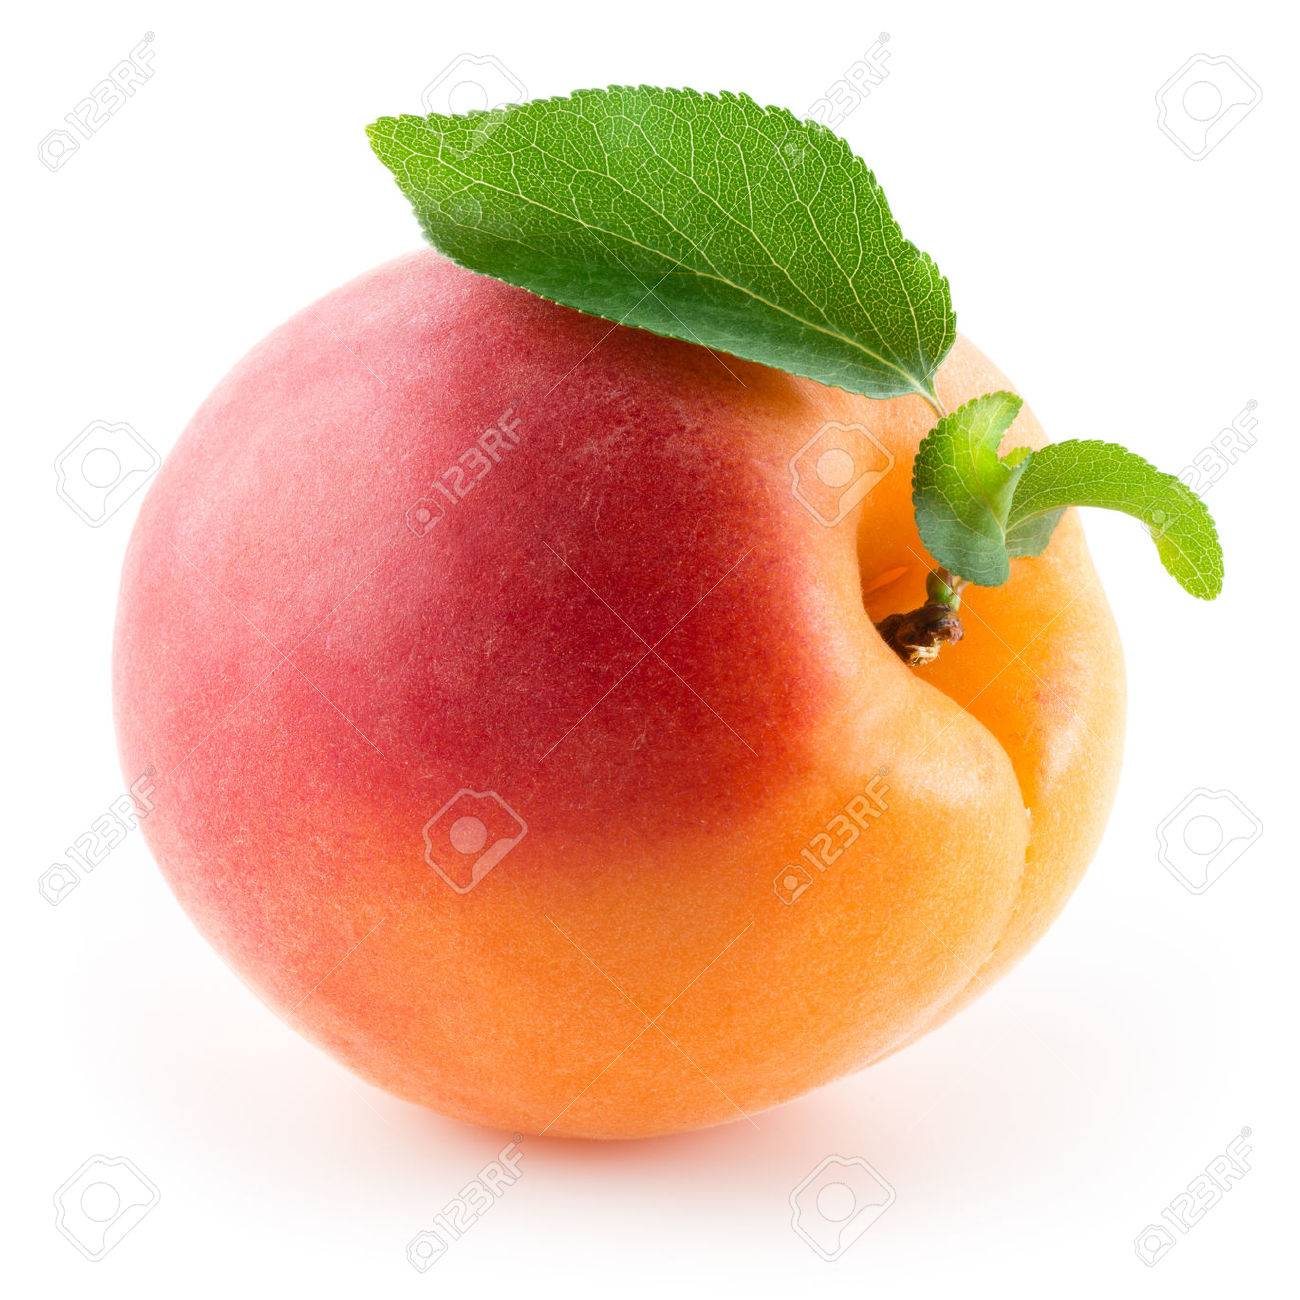 Apricot. Fruit with leaf on a white background. - 54475462